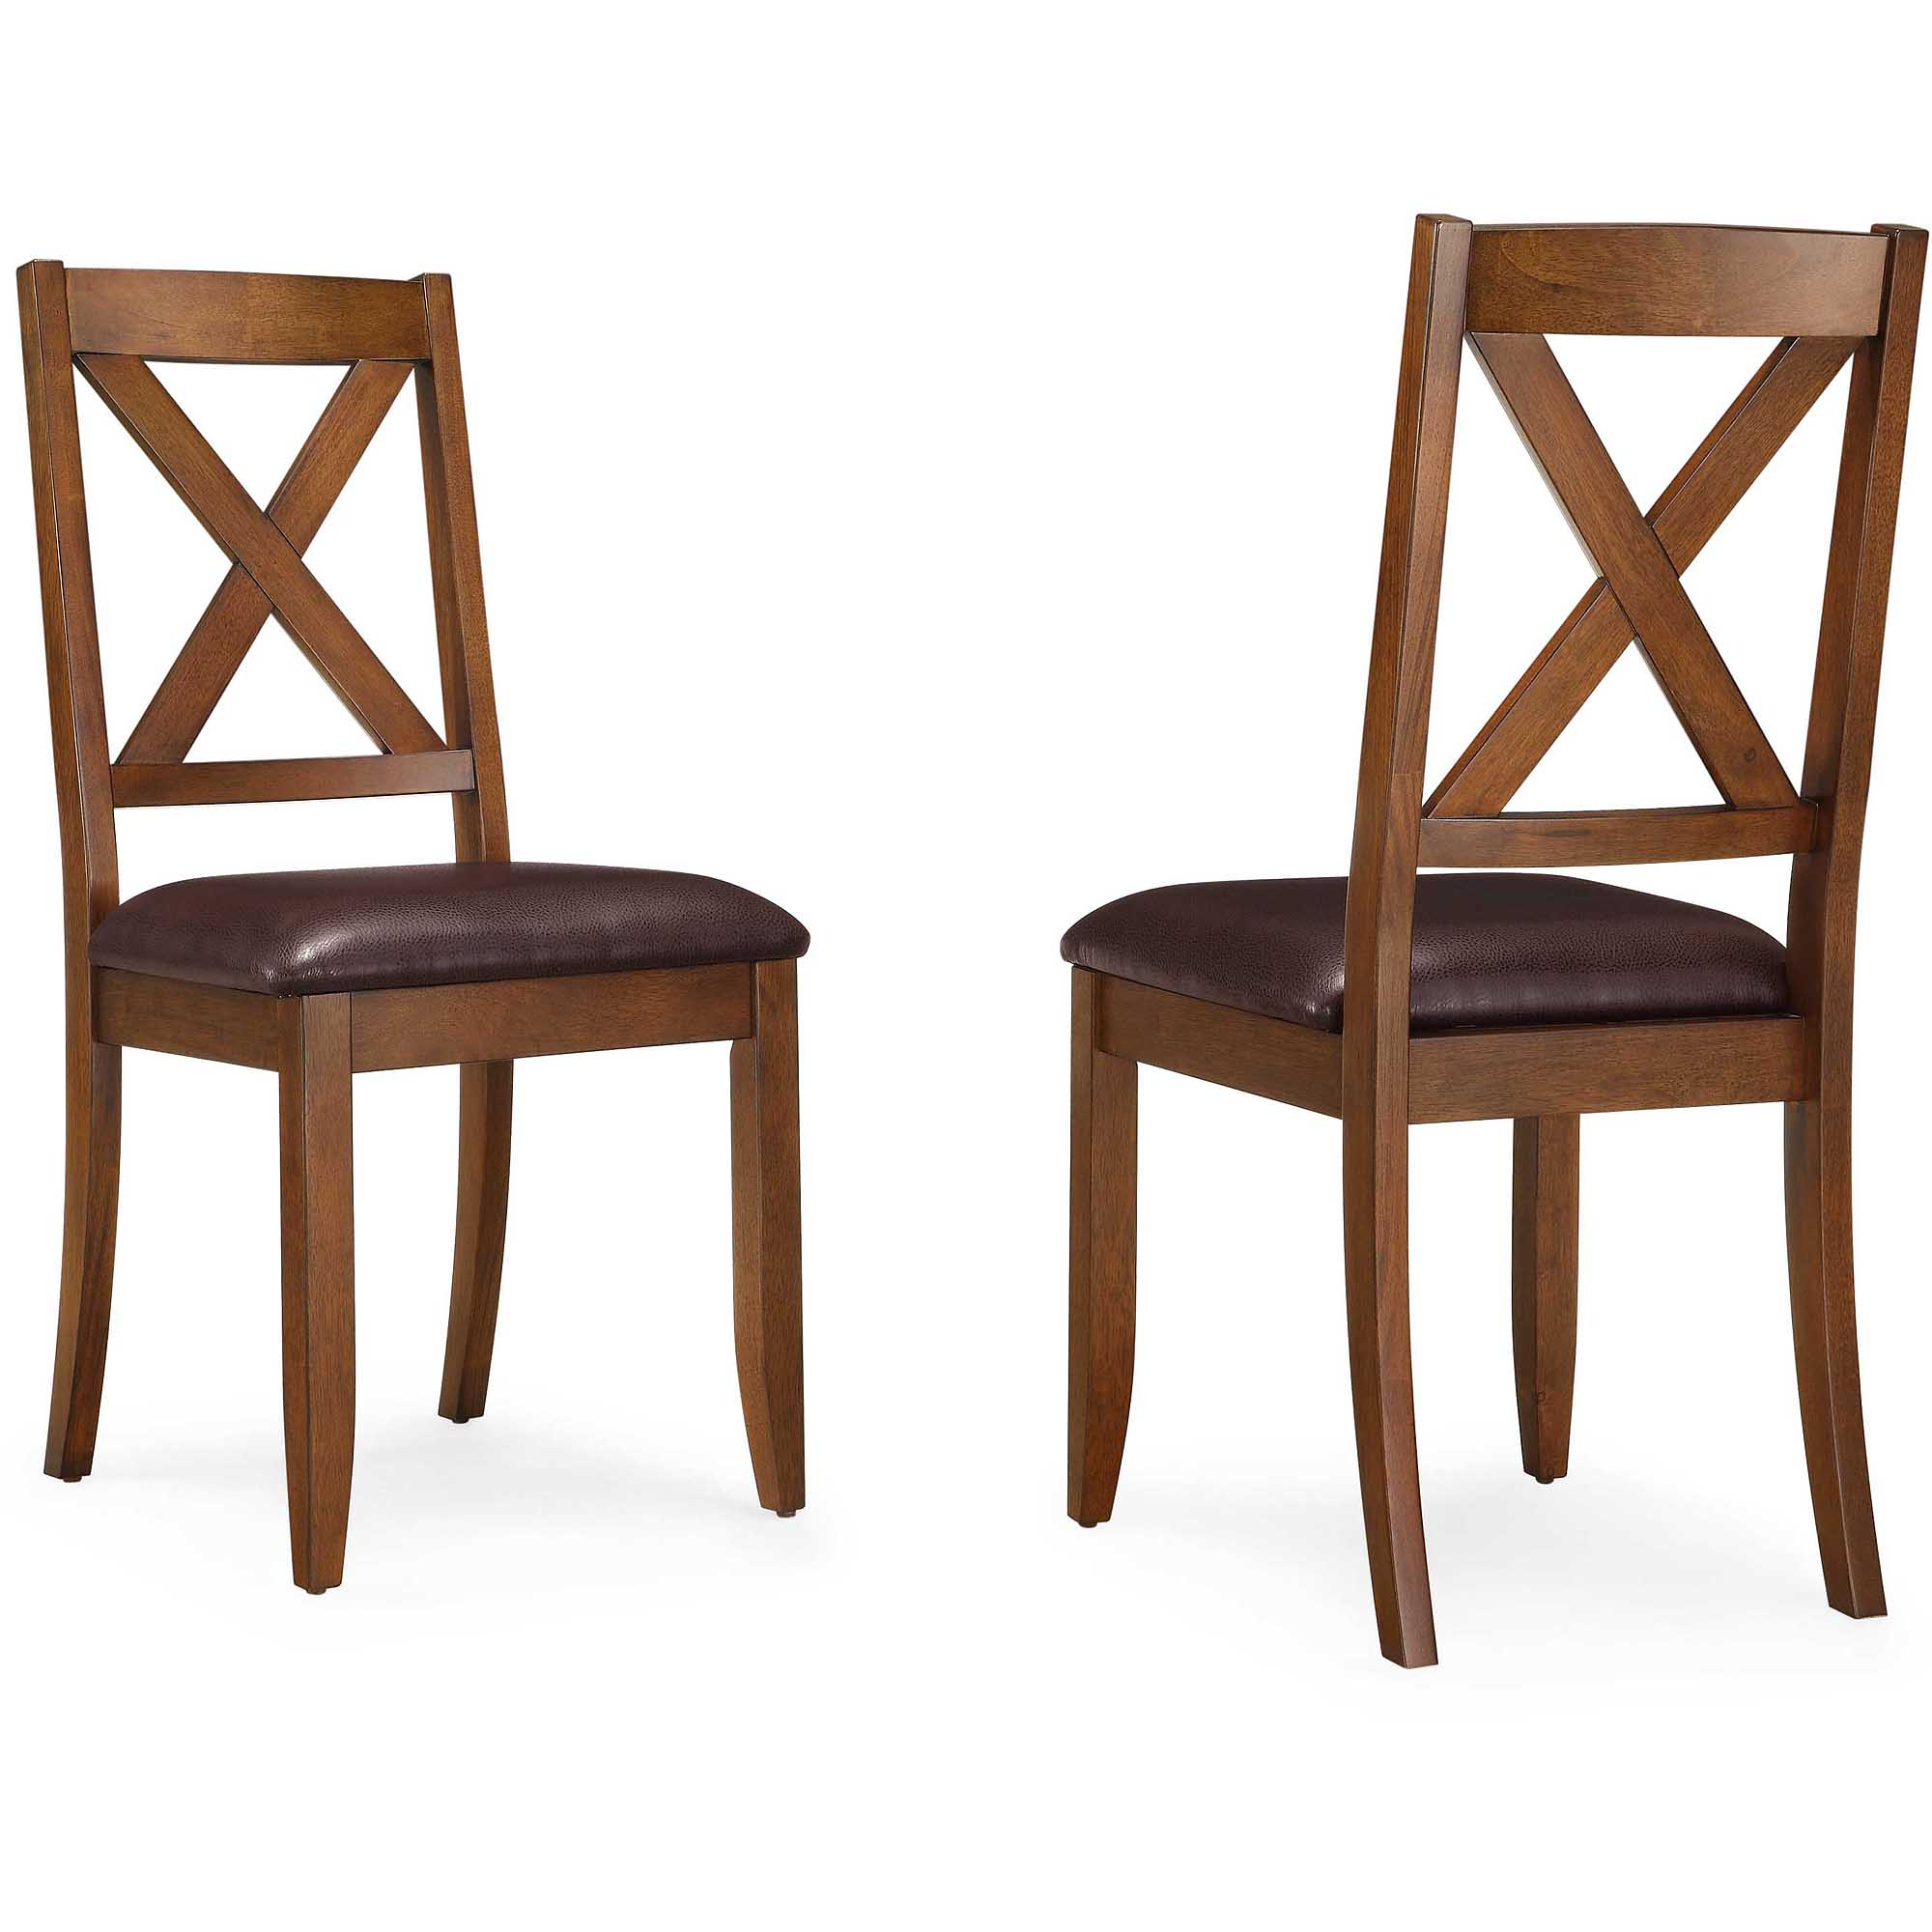 Better Homes And Gardens Maddox Crossing Dining Chair, Set Of 2, Brown    Walmart.com